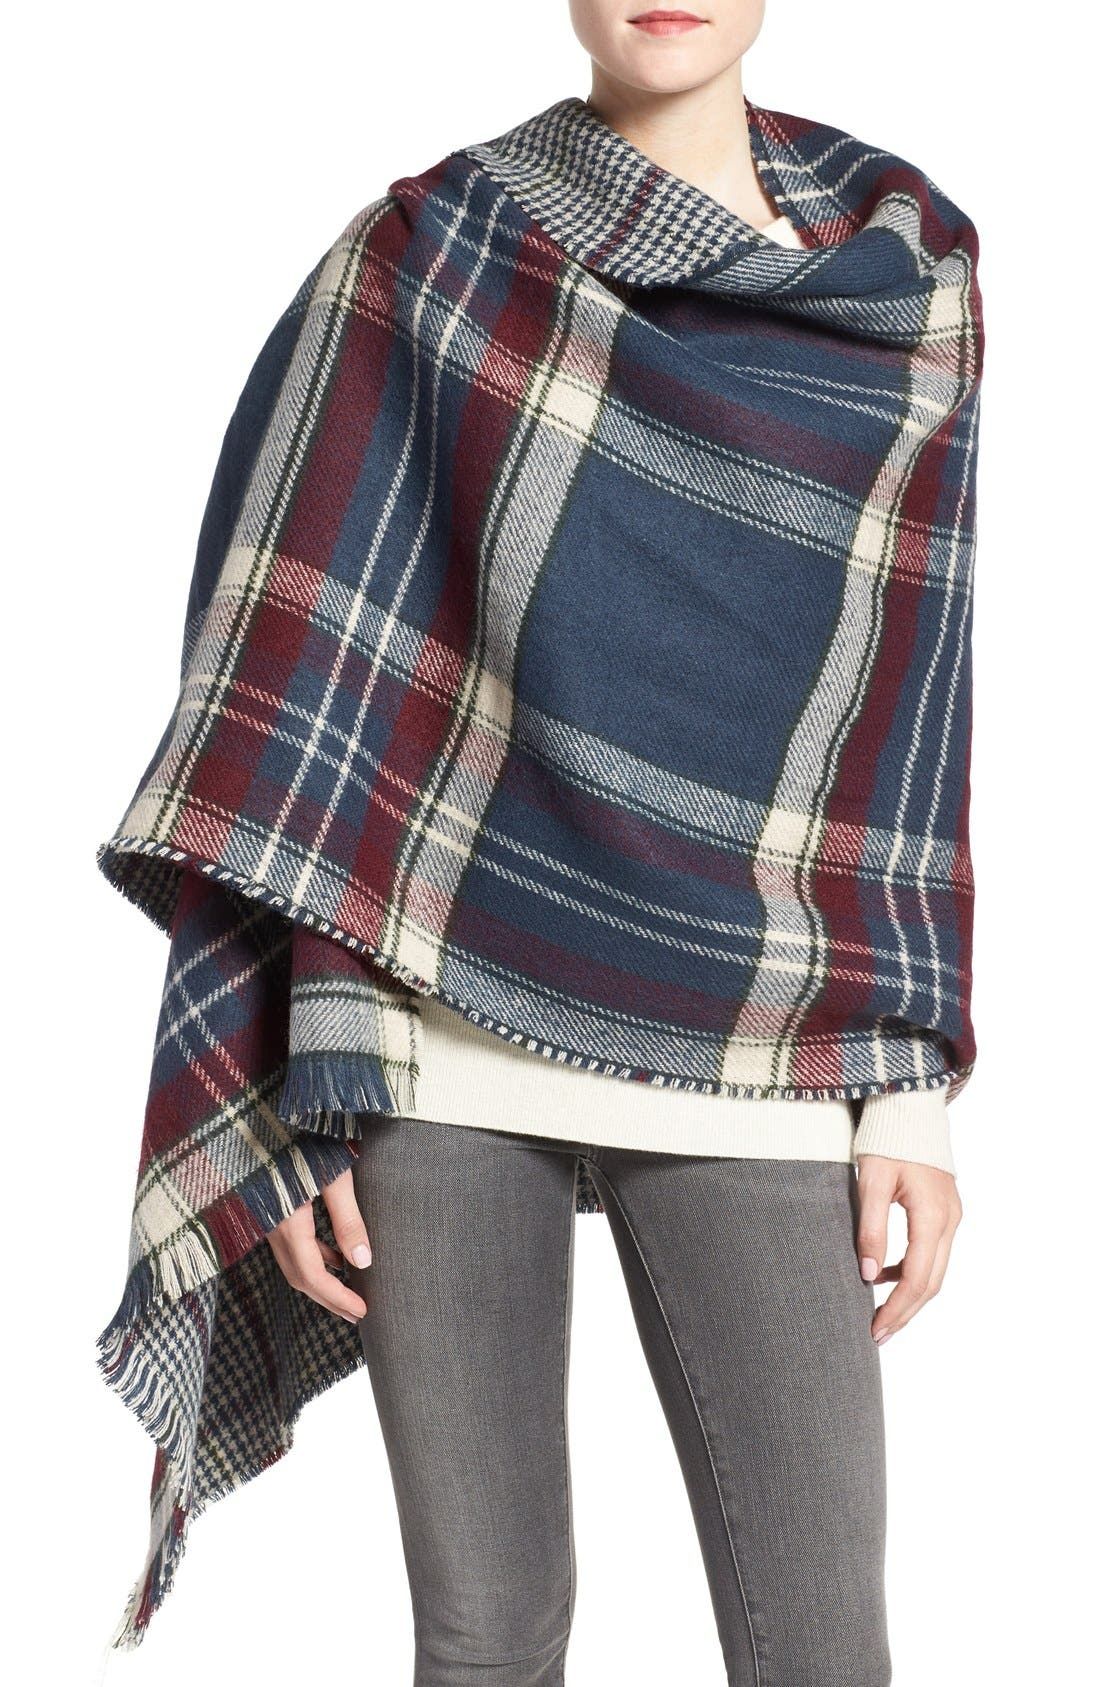 Alternate Image 1 Selected - Barbour Reversible Plaid & Check Wrap